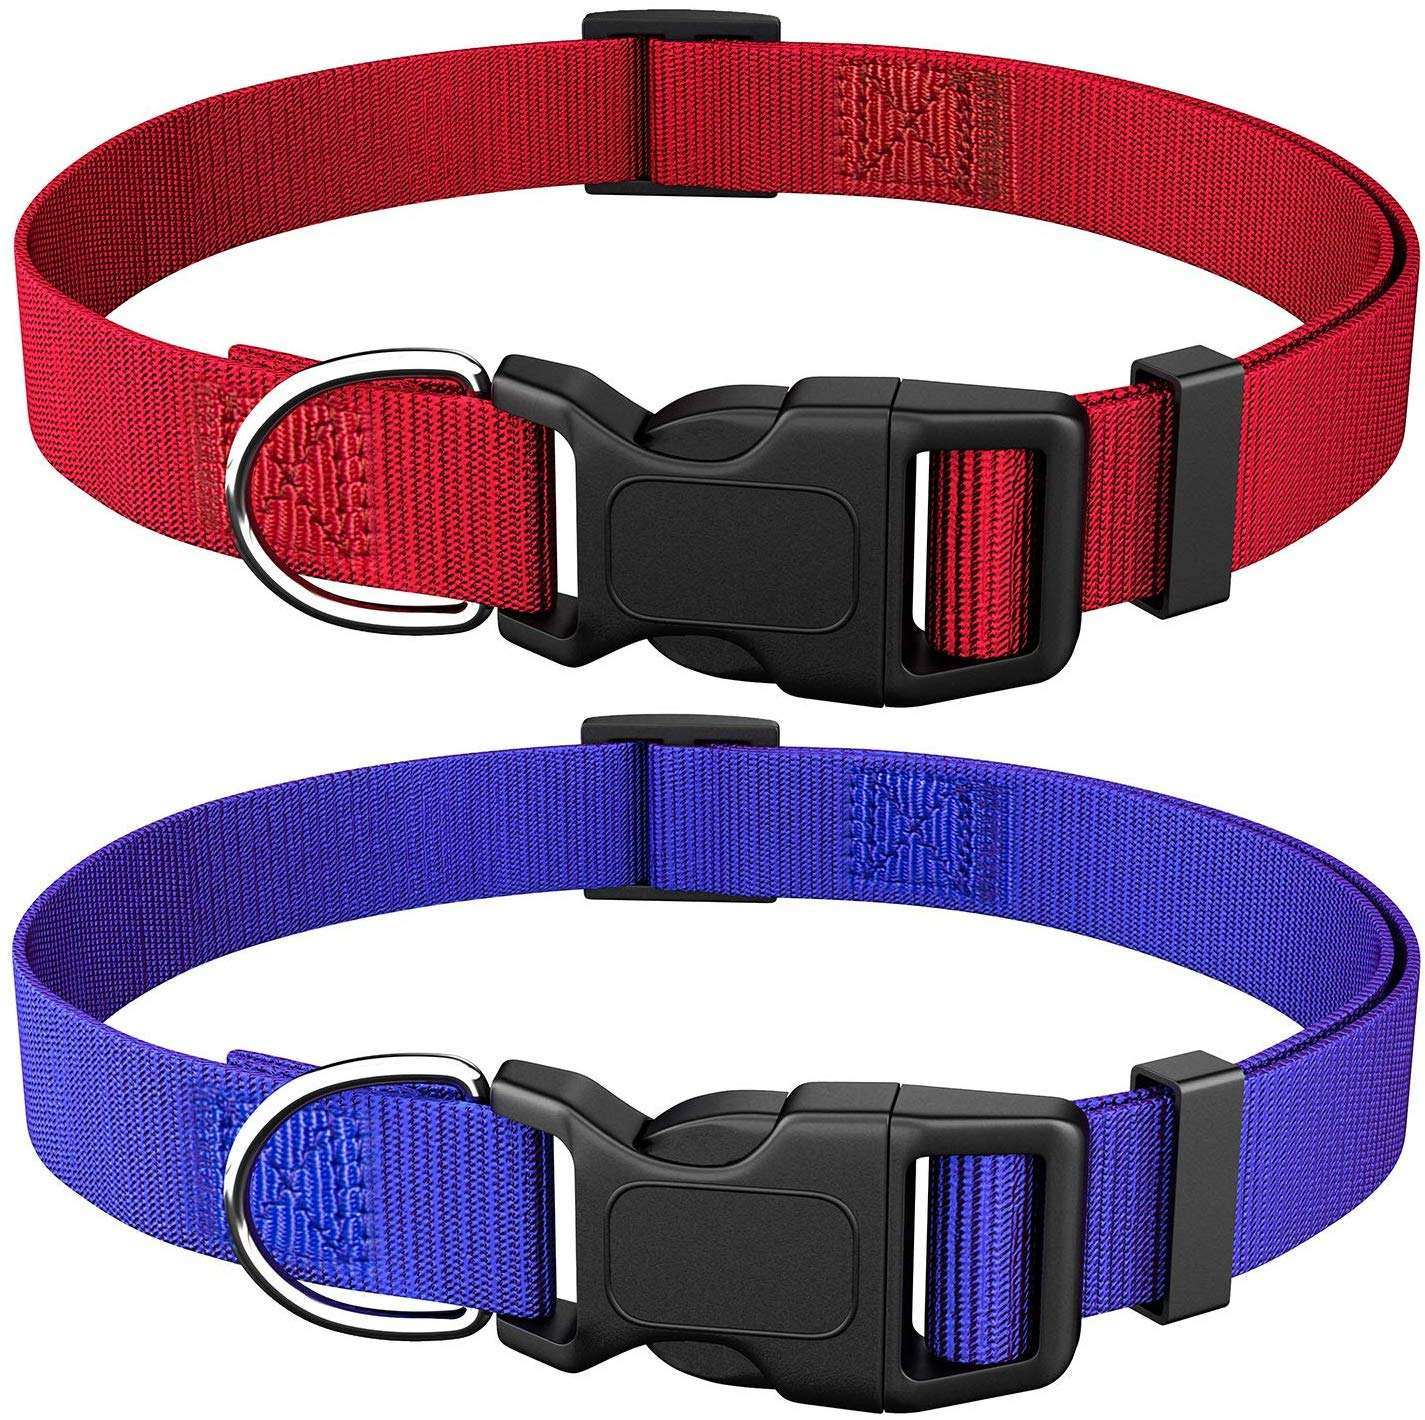 Kingtale solid color soft basic nylon dog pet collar for daily walking